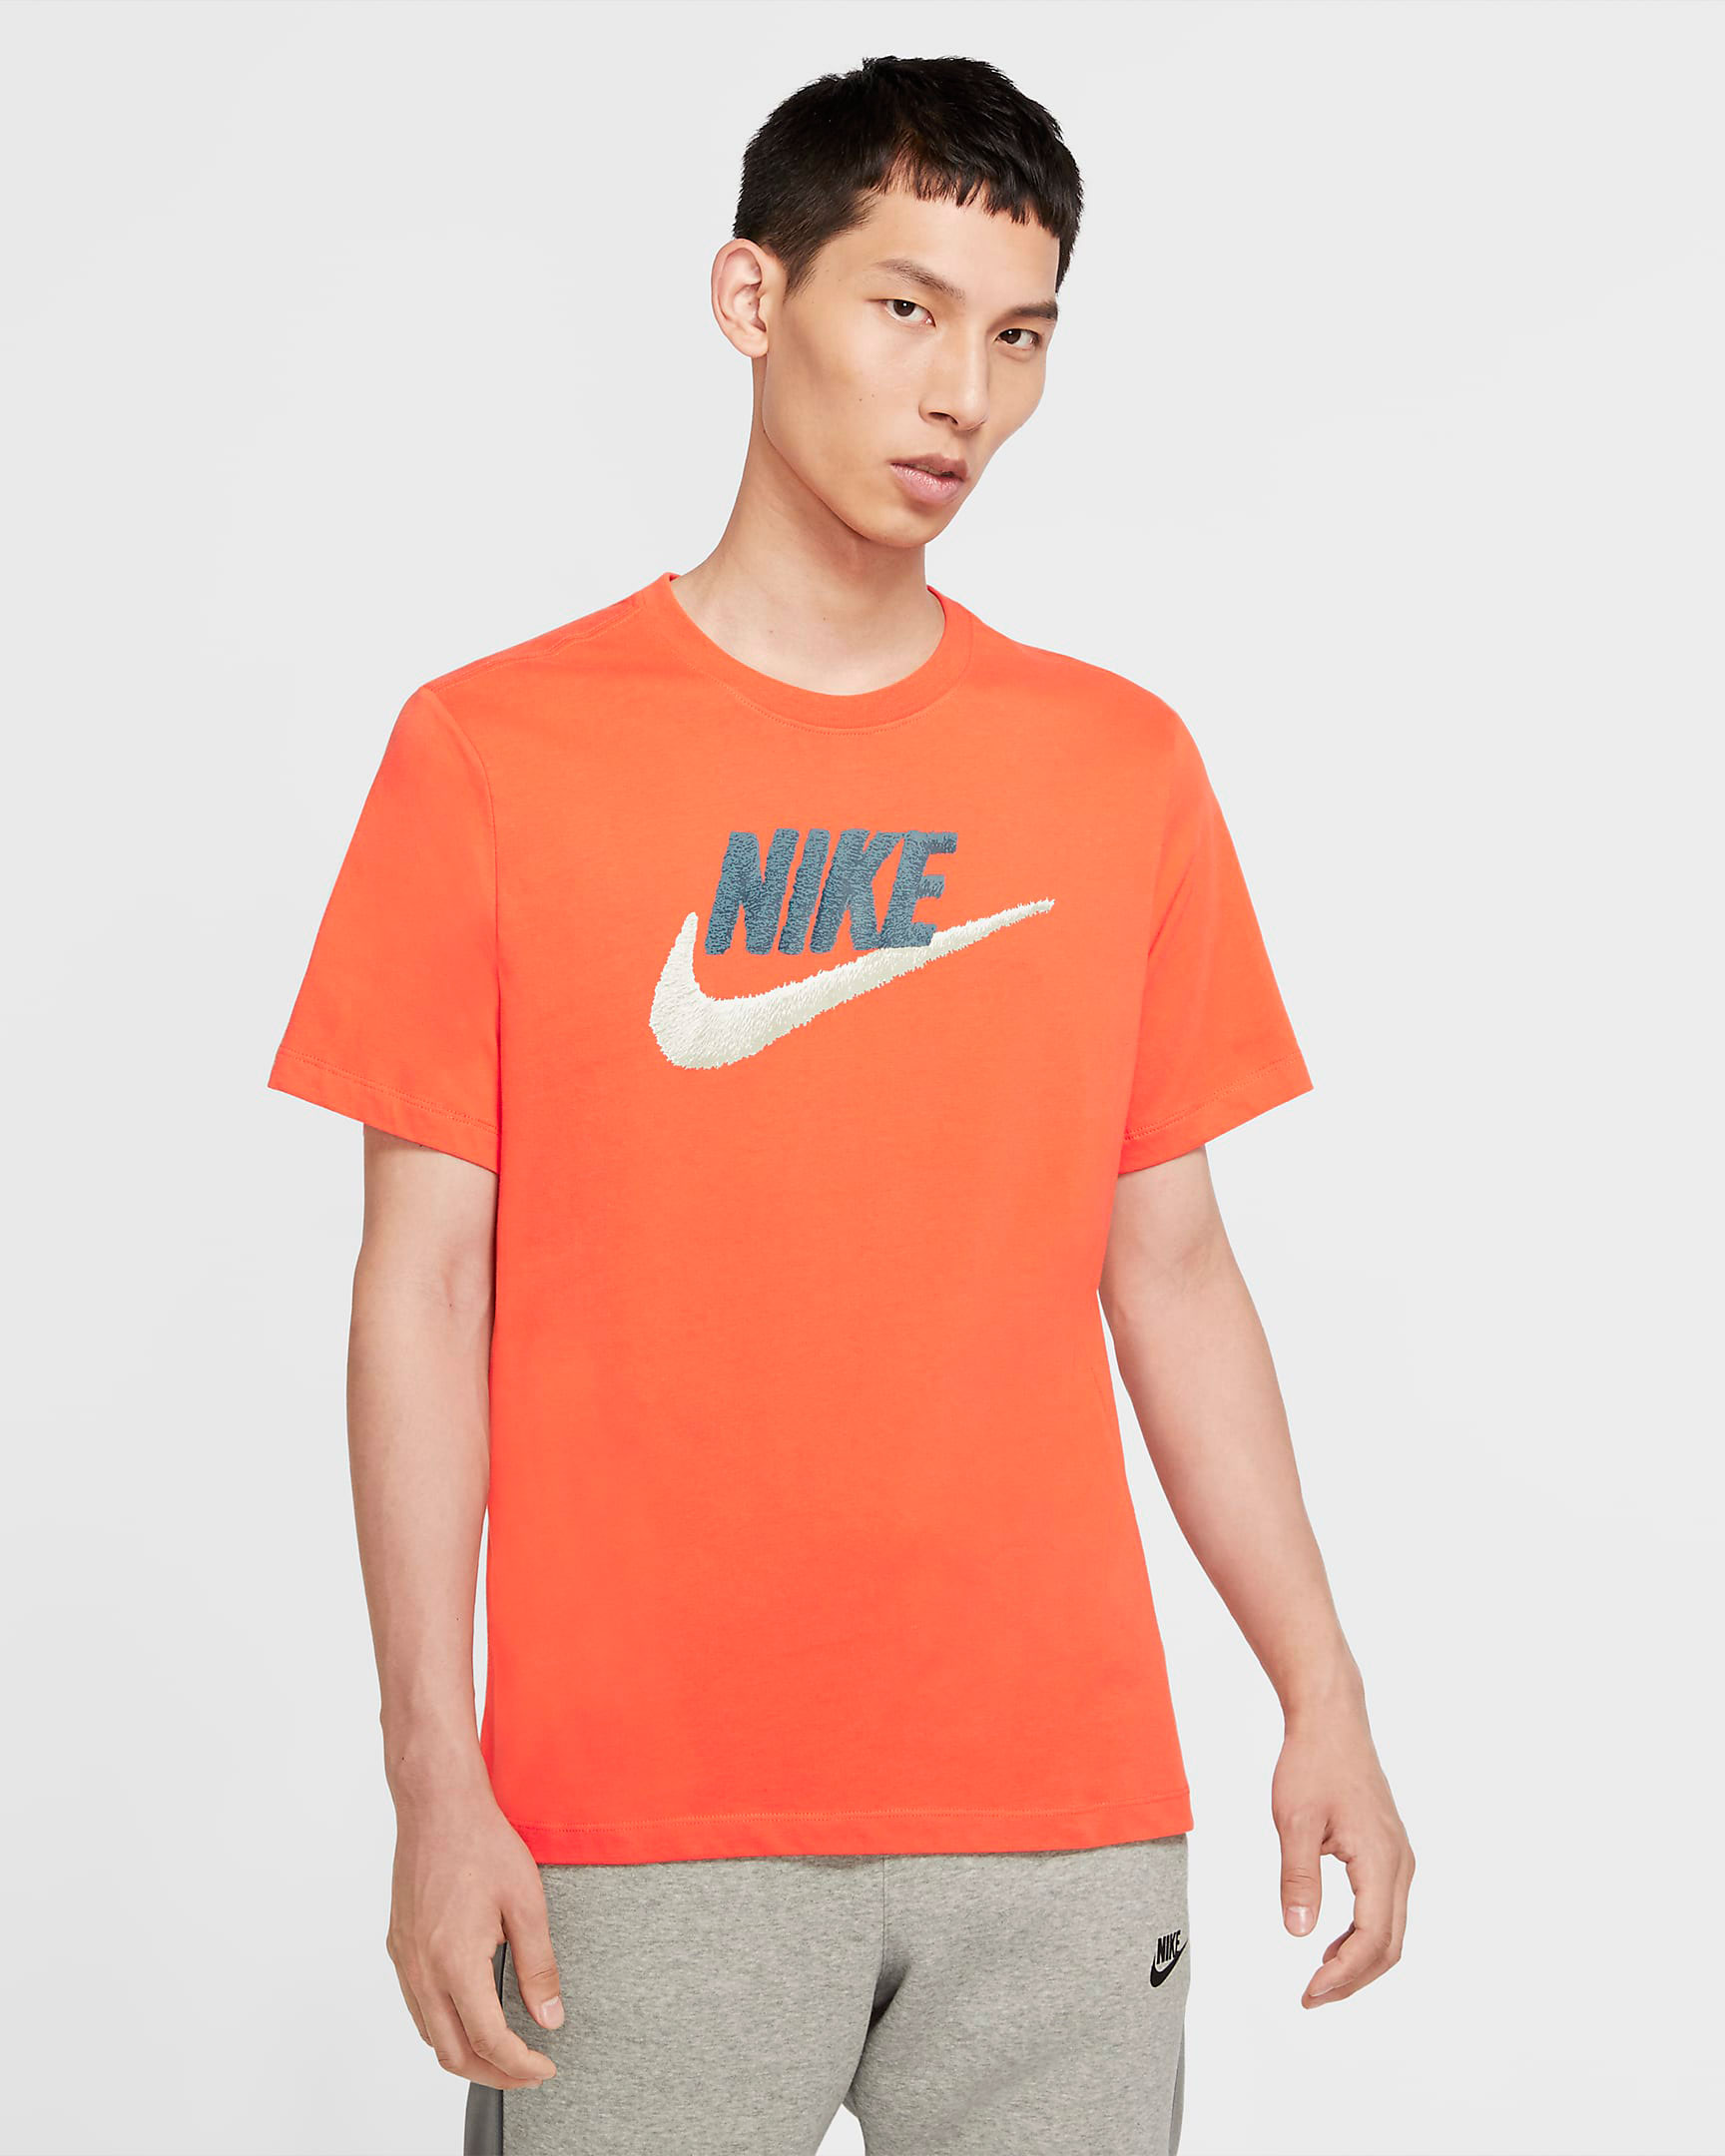 nike-logo-orange-shirt